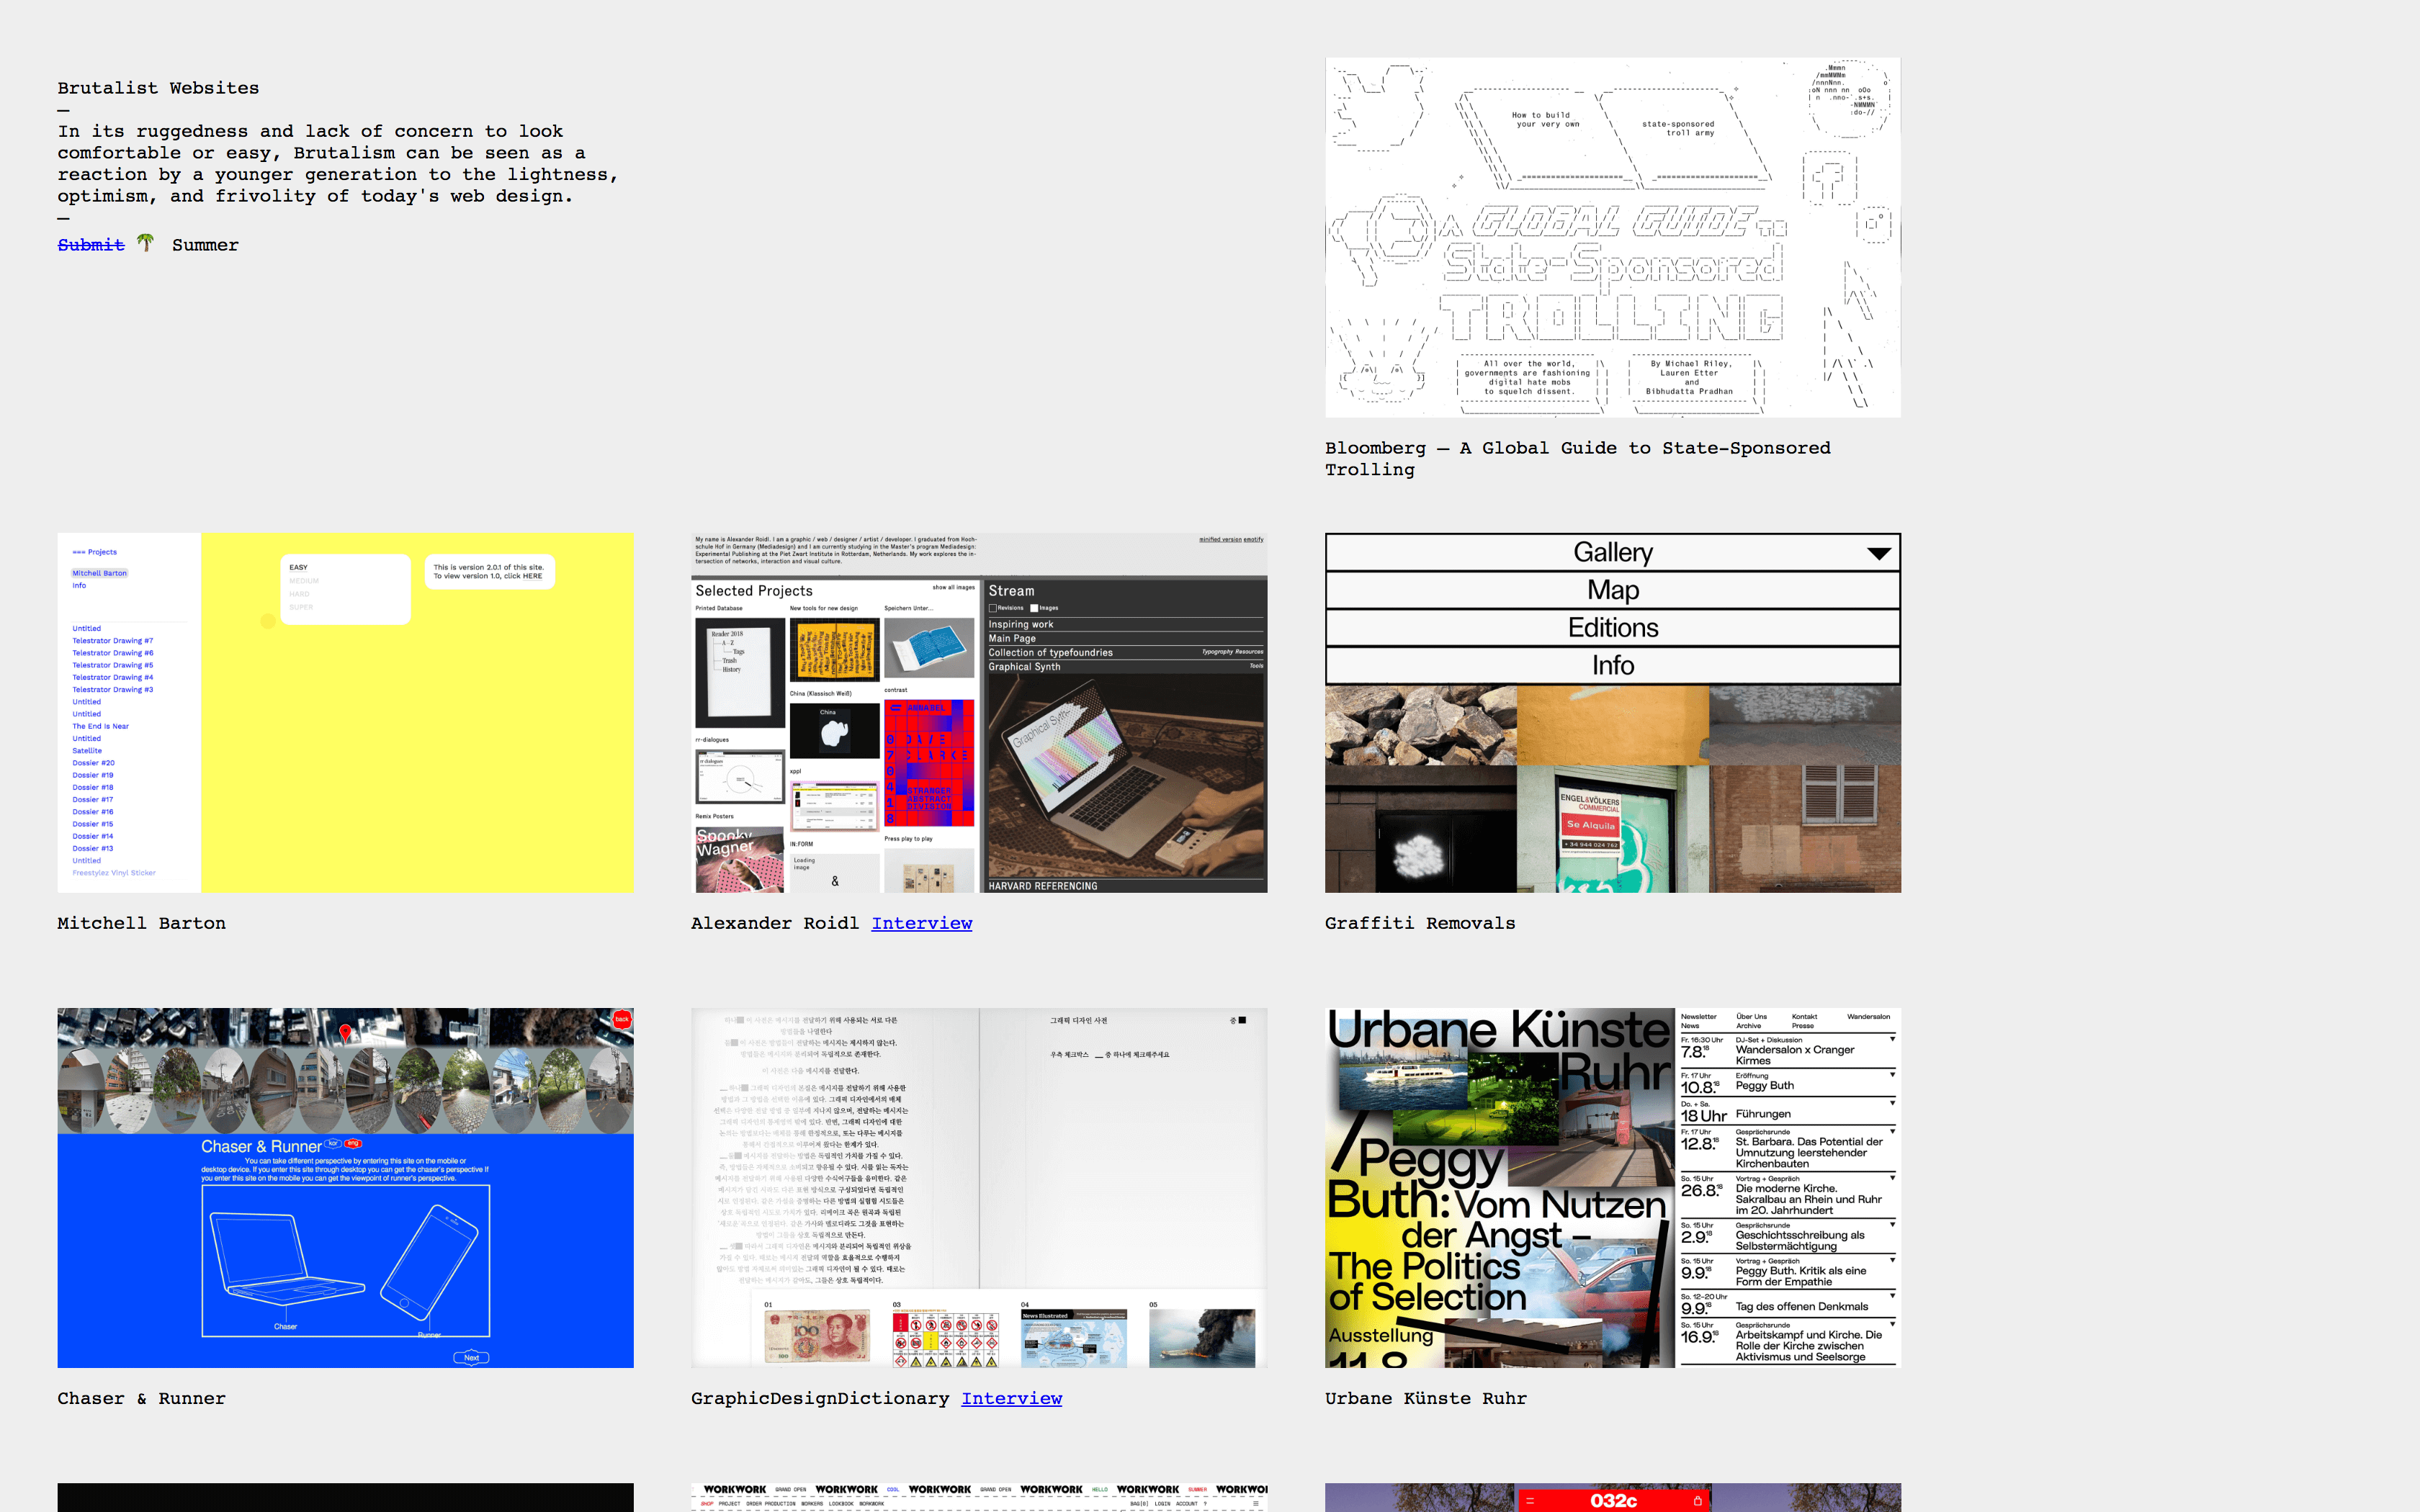 The Brutalist Websites home page.